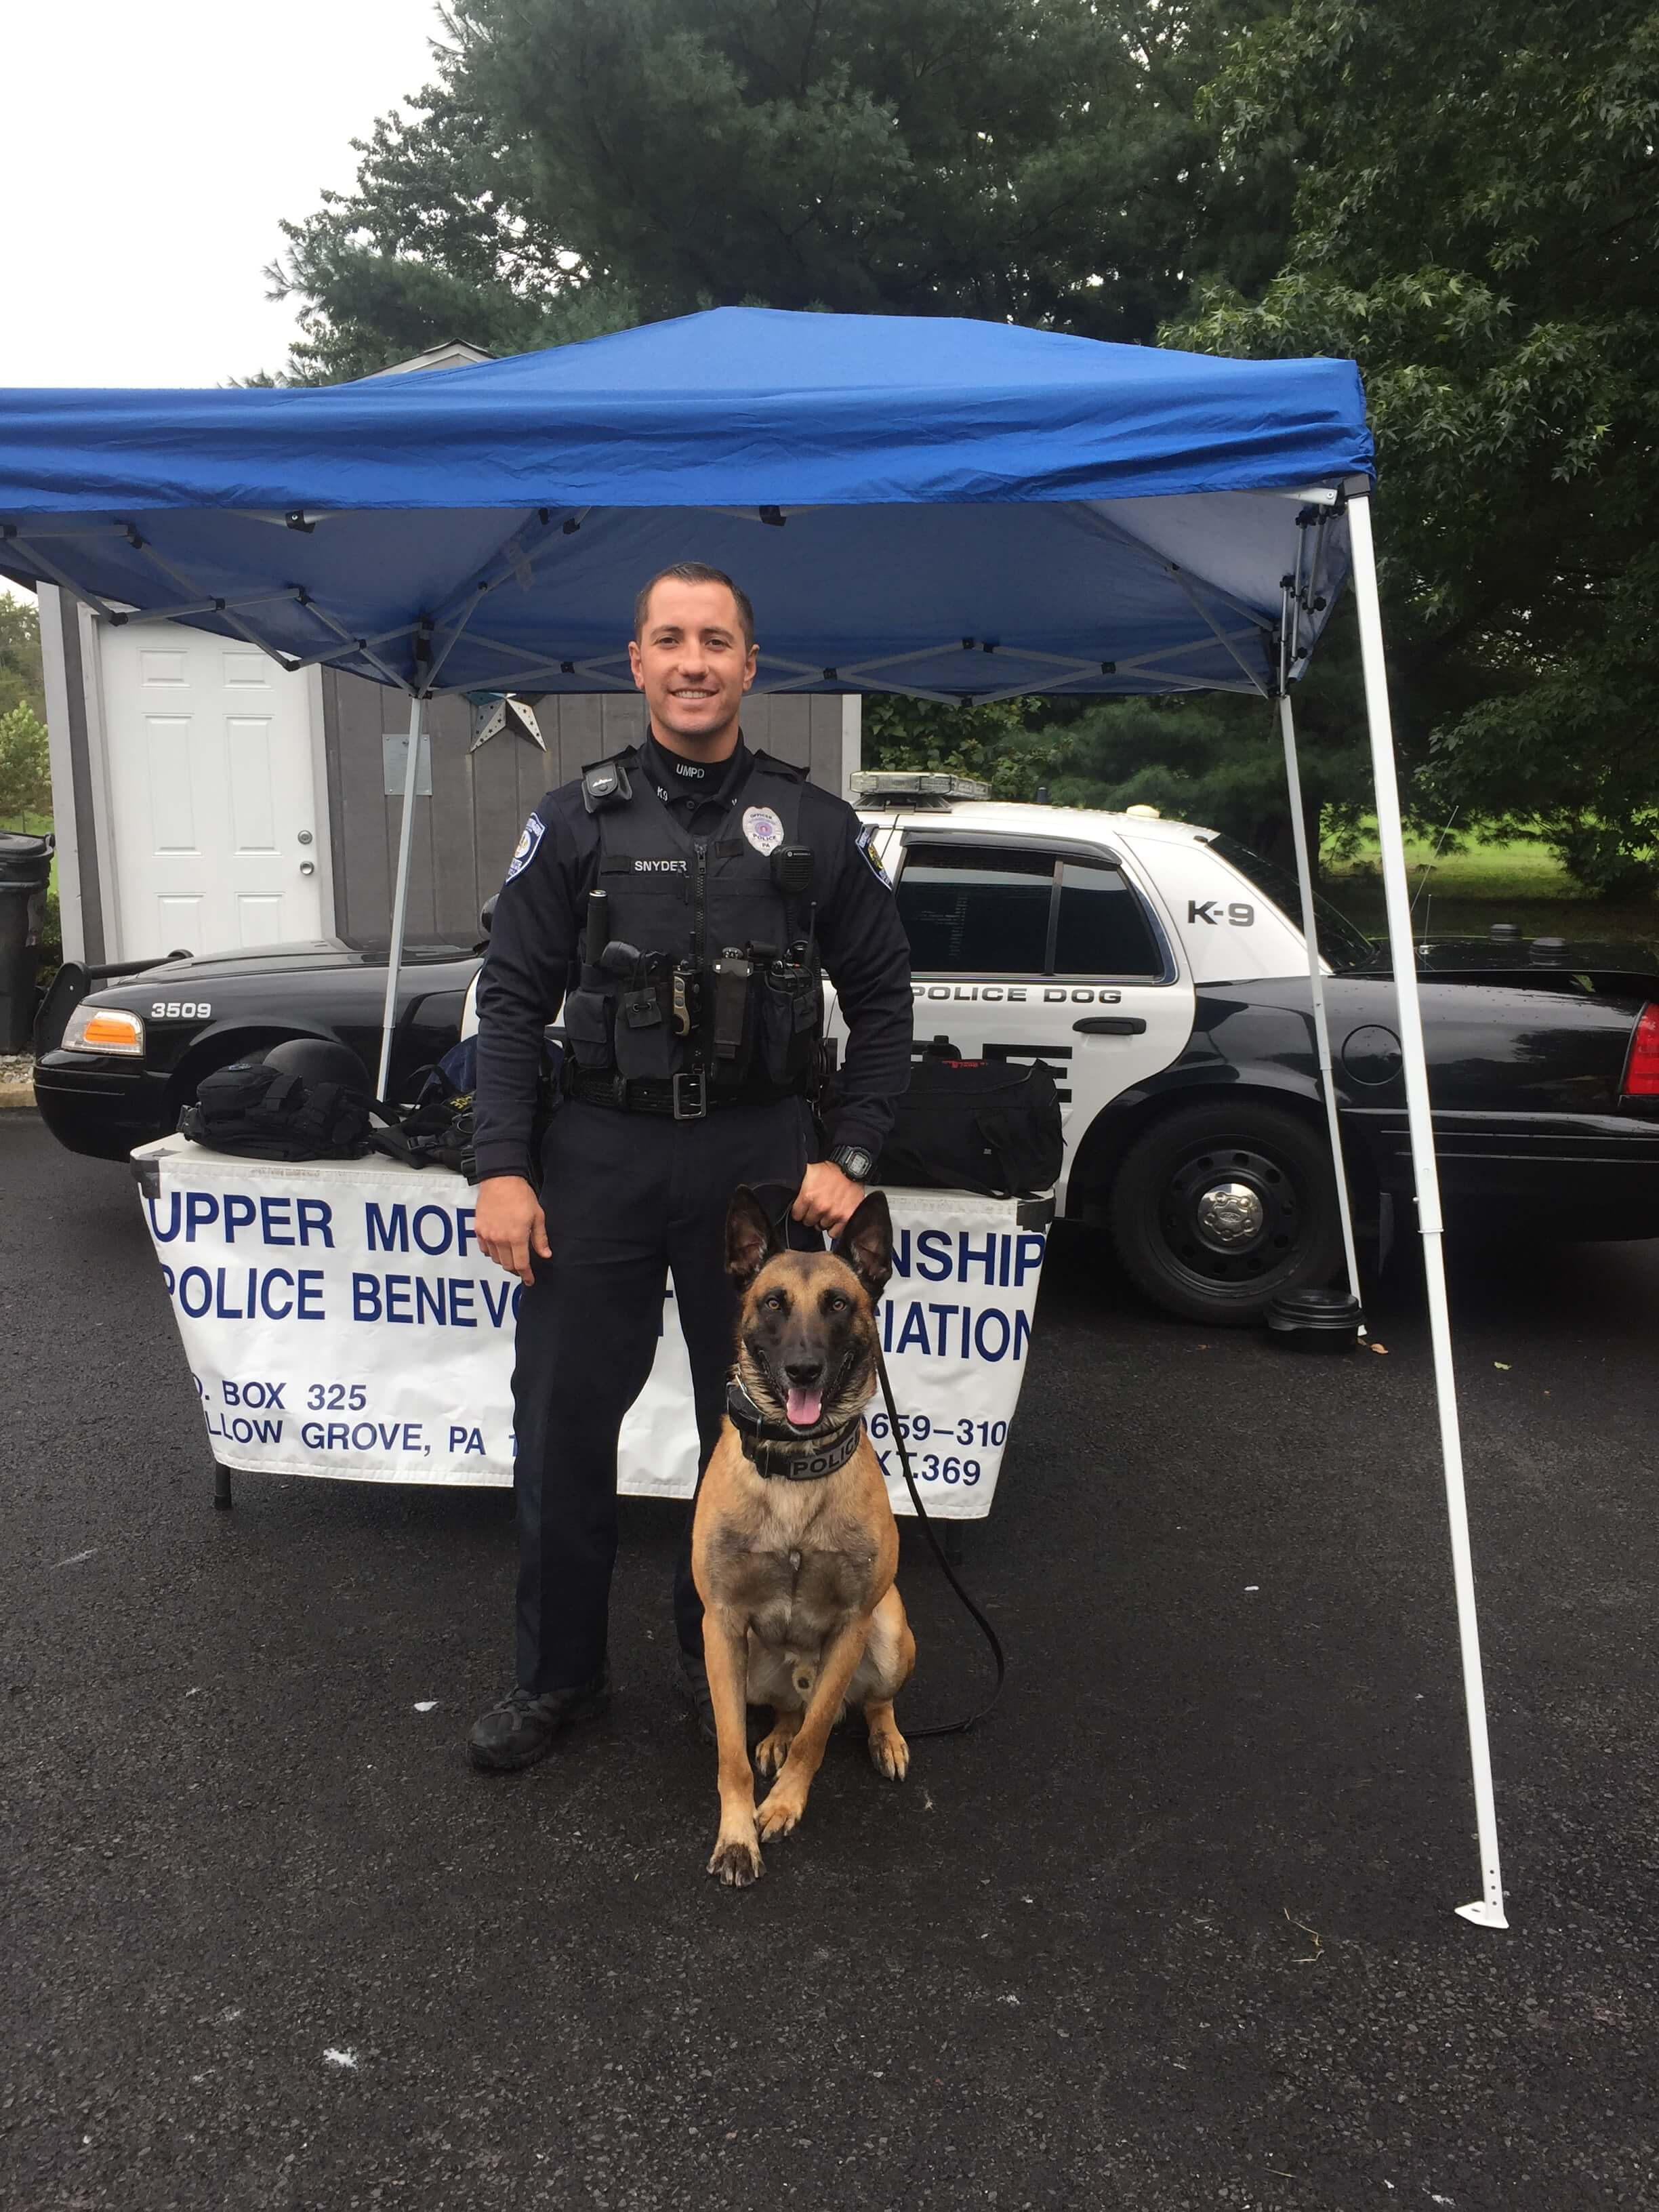 Ofc Snyder and K9 Maximus